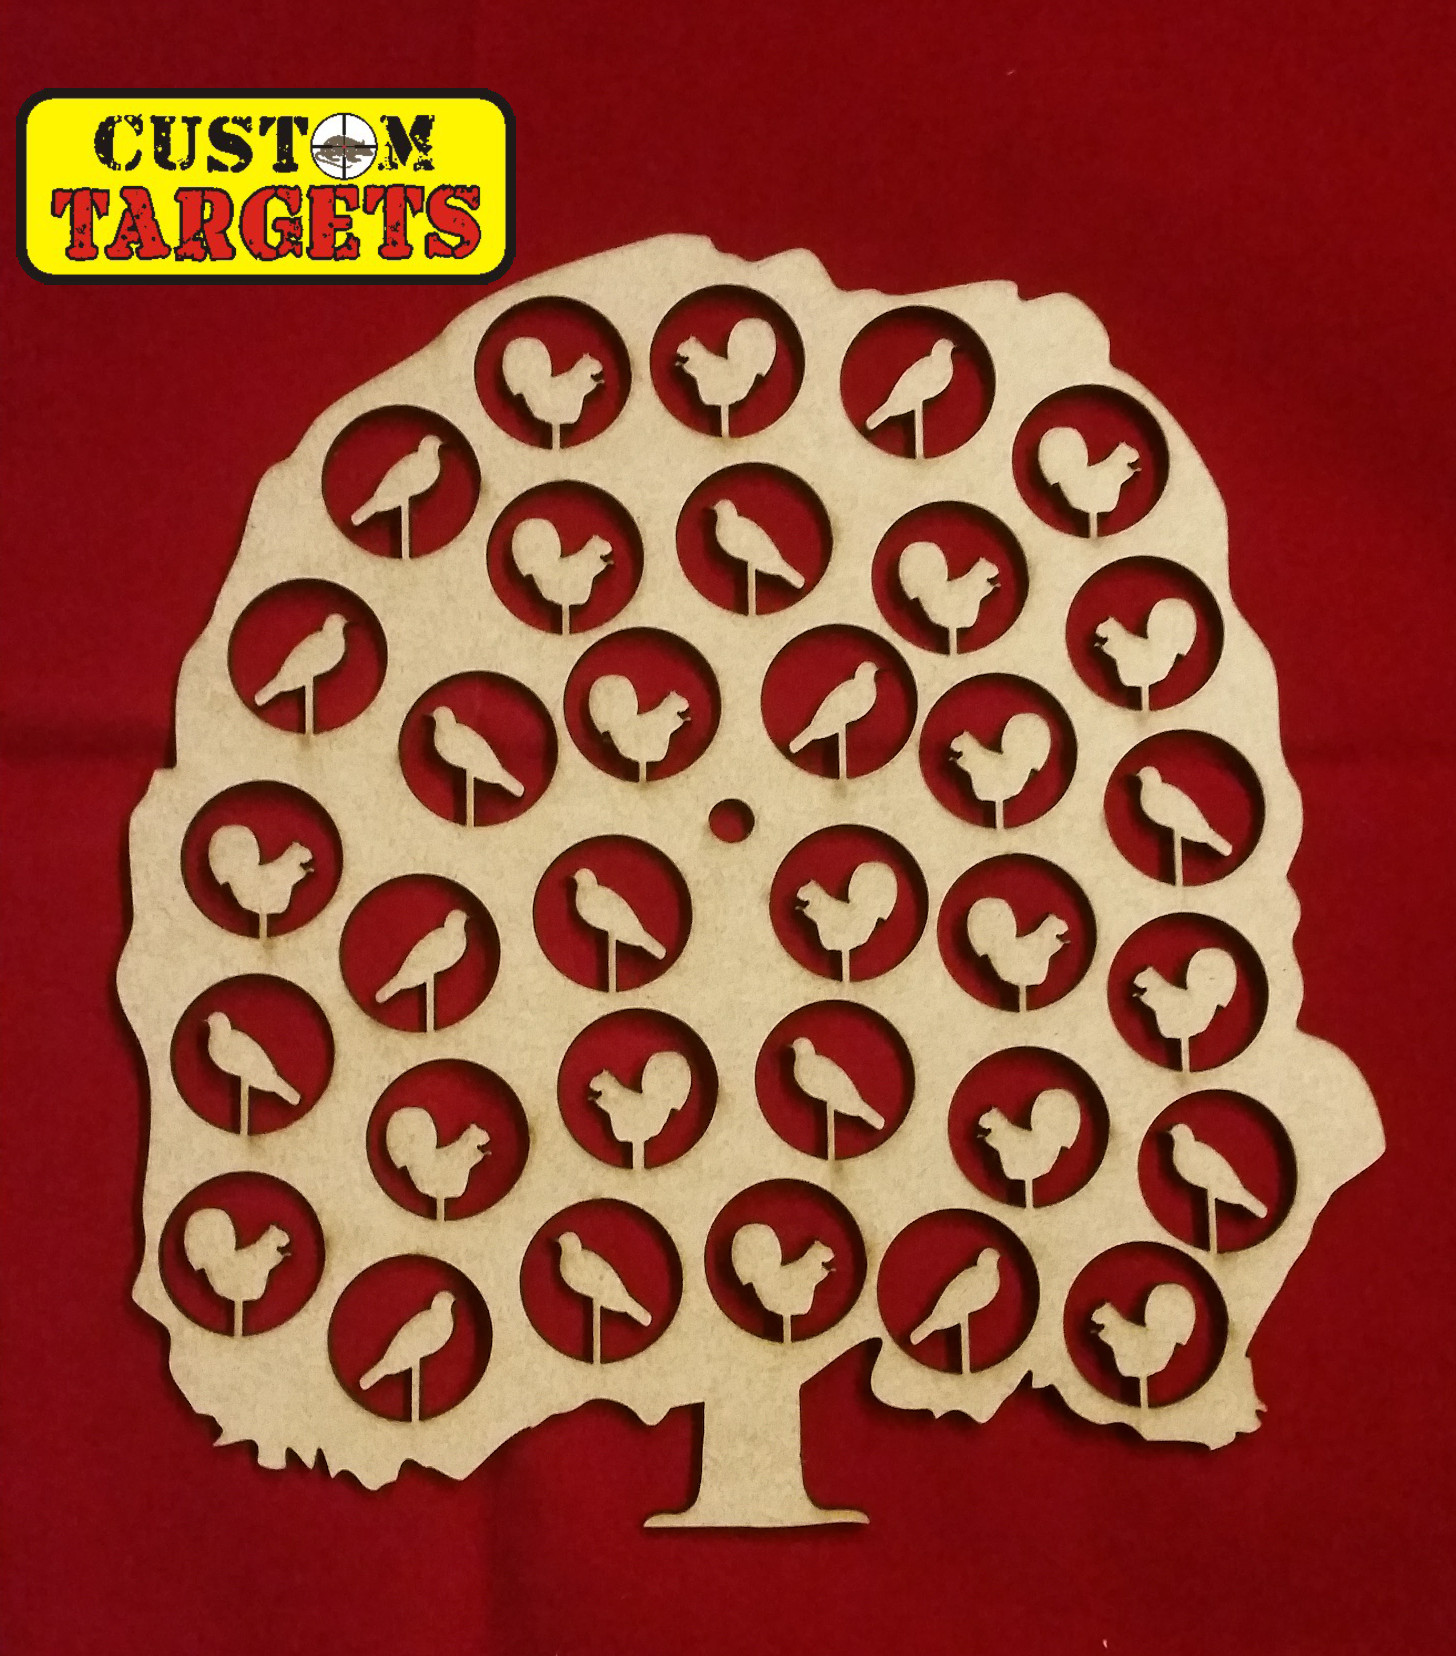 Custom Targets - Critter Tree - Shoot Out Airgun Target-33 zones